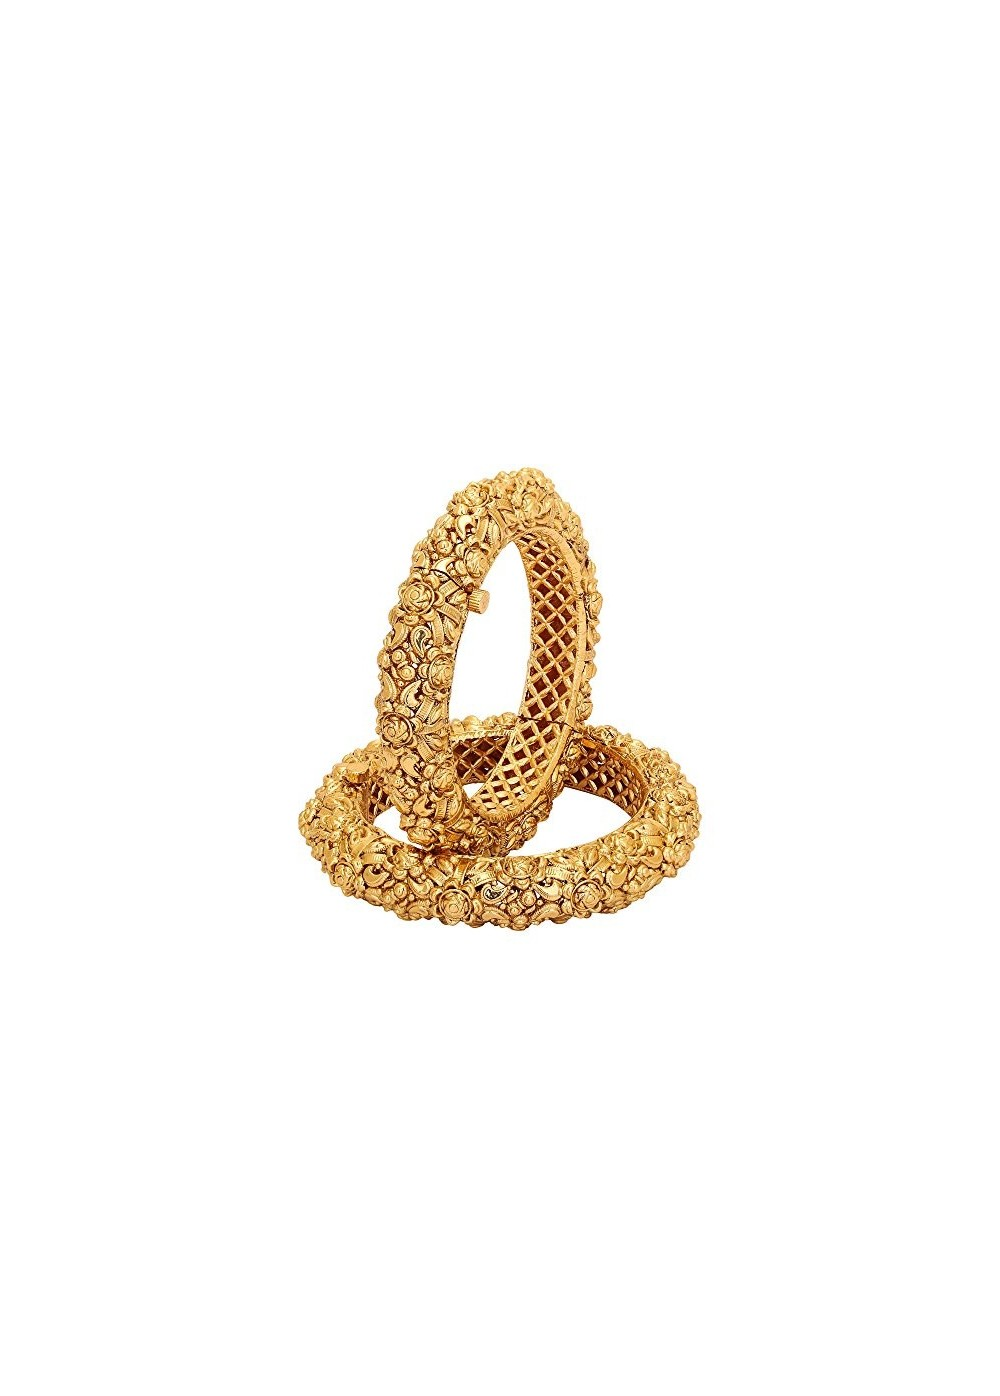 Royal Design Aarvi Collections 24k Gold Plated With Unique Royal Design Make Openable Polki Bangle For Girls Women